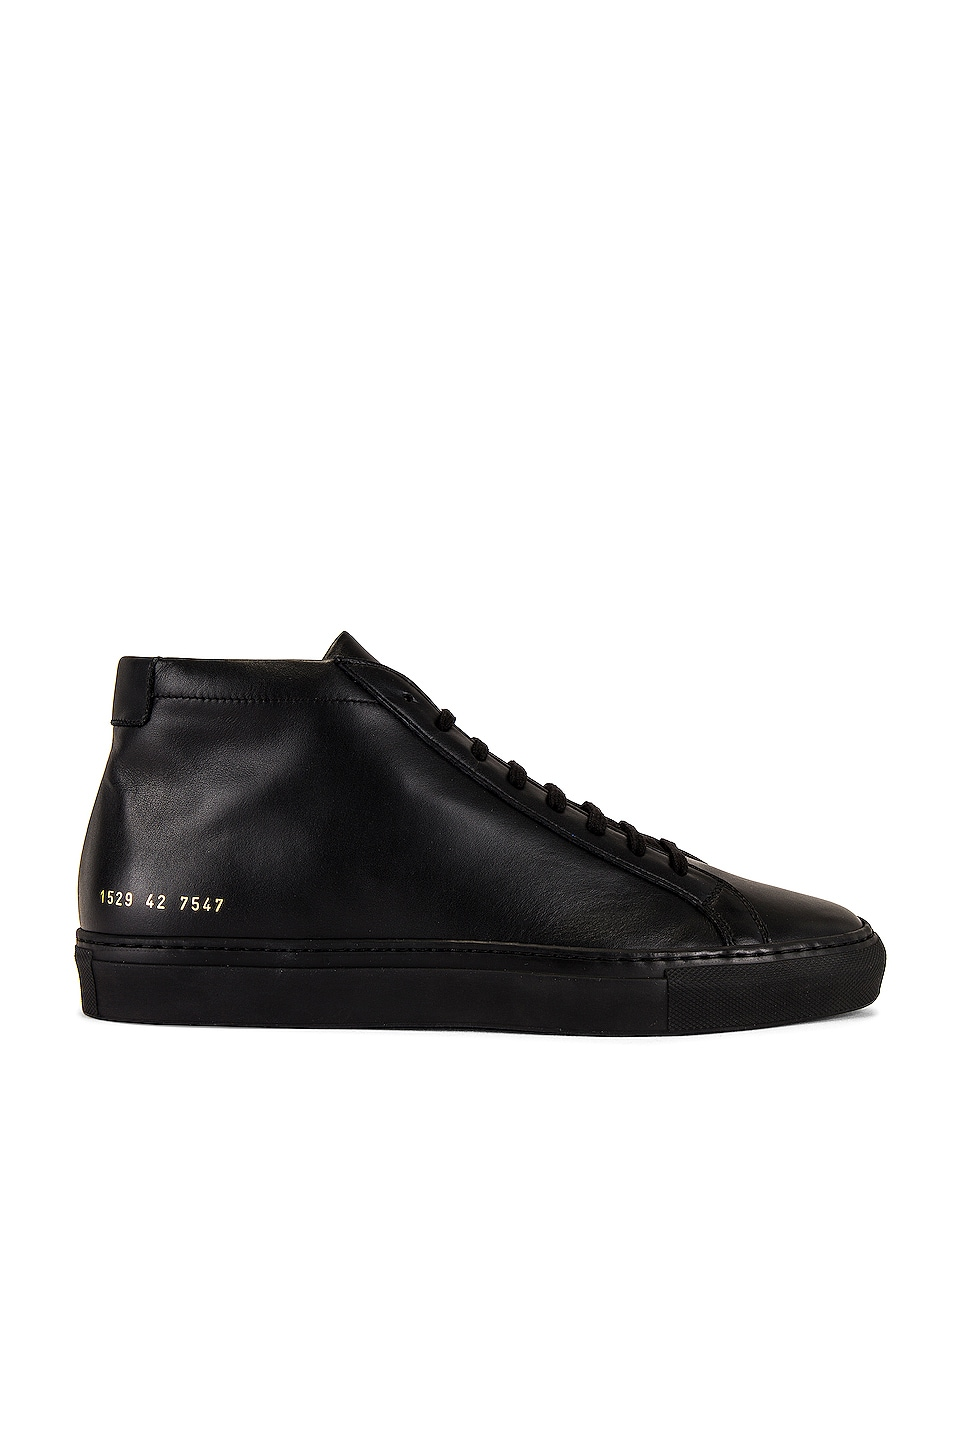 Common Projects Original Leather Achilles Mid in Black